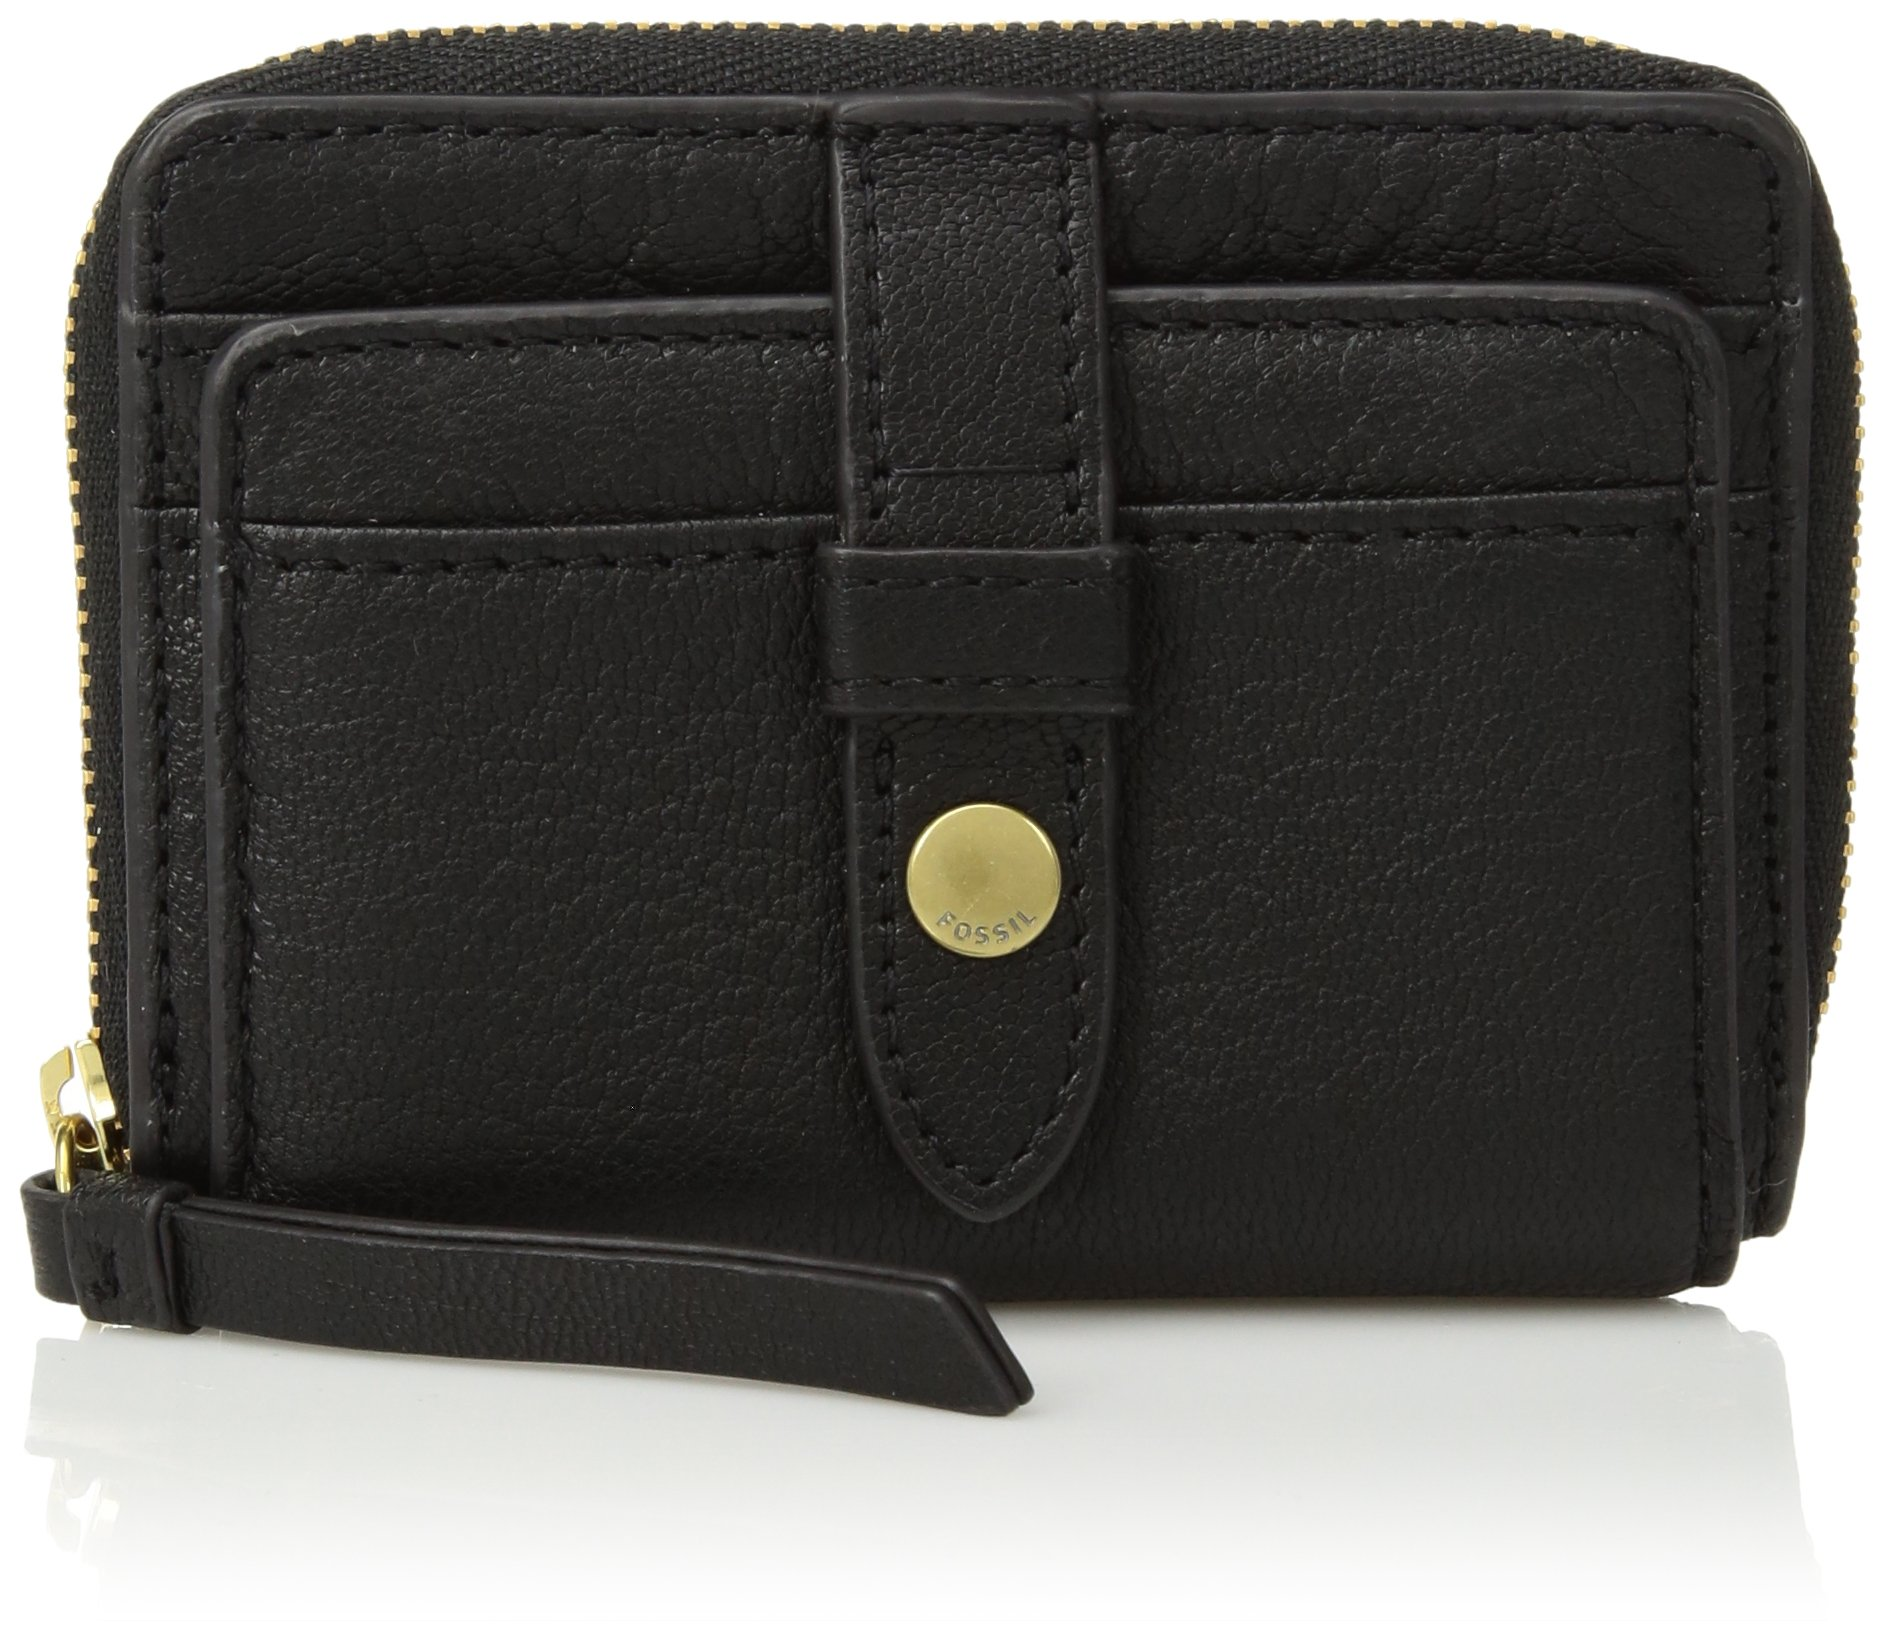 Fossil FIONA ZIP COIN PURSE, Black